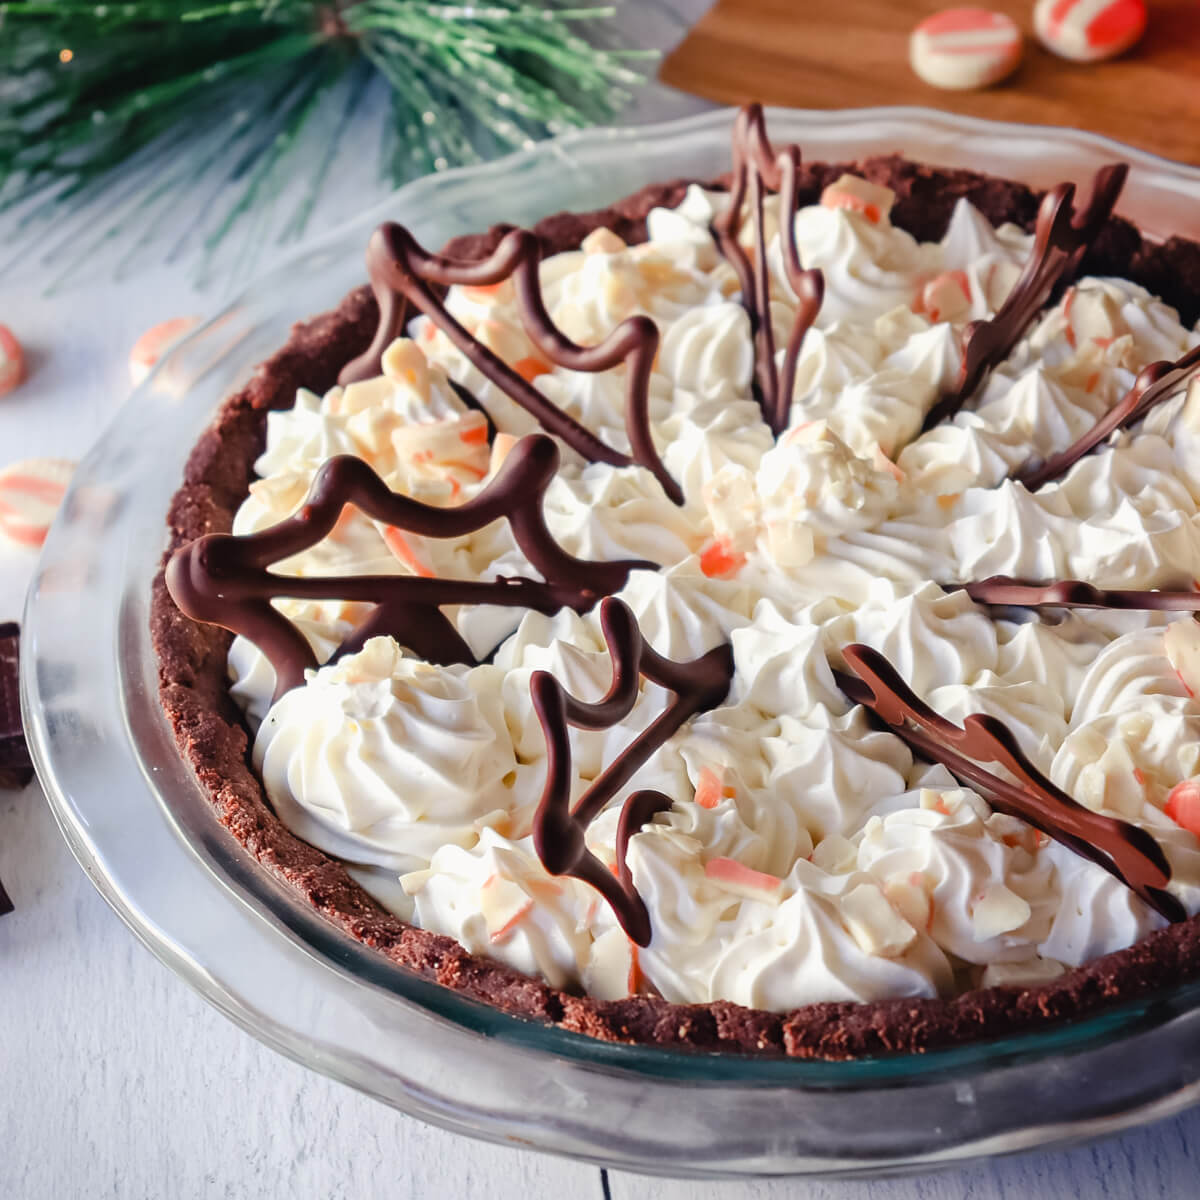 Keto Peppermint Cream Pie